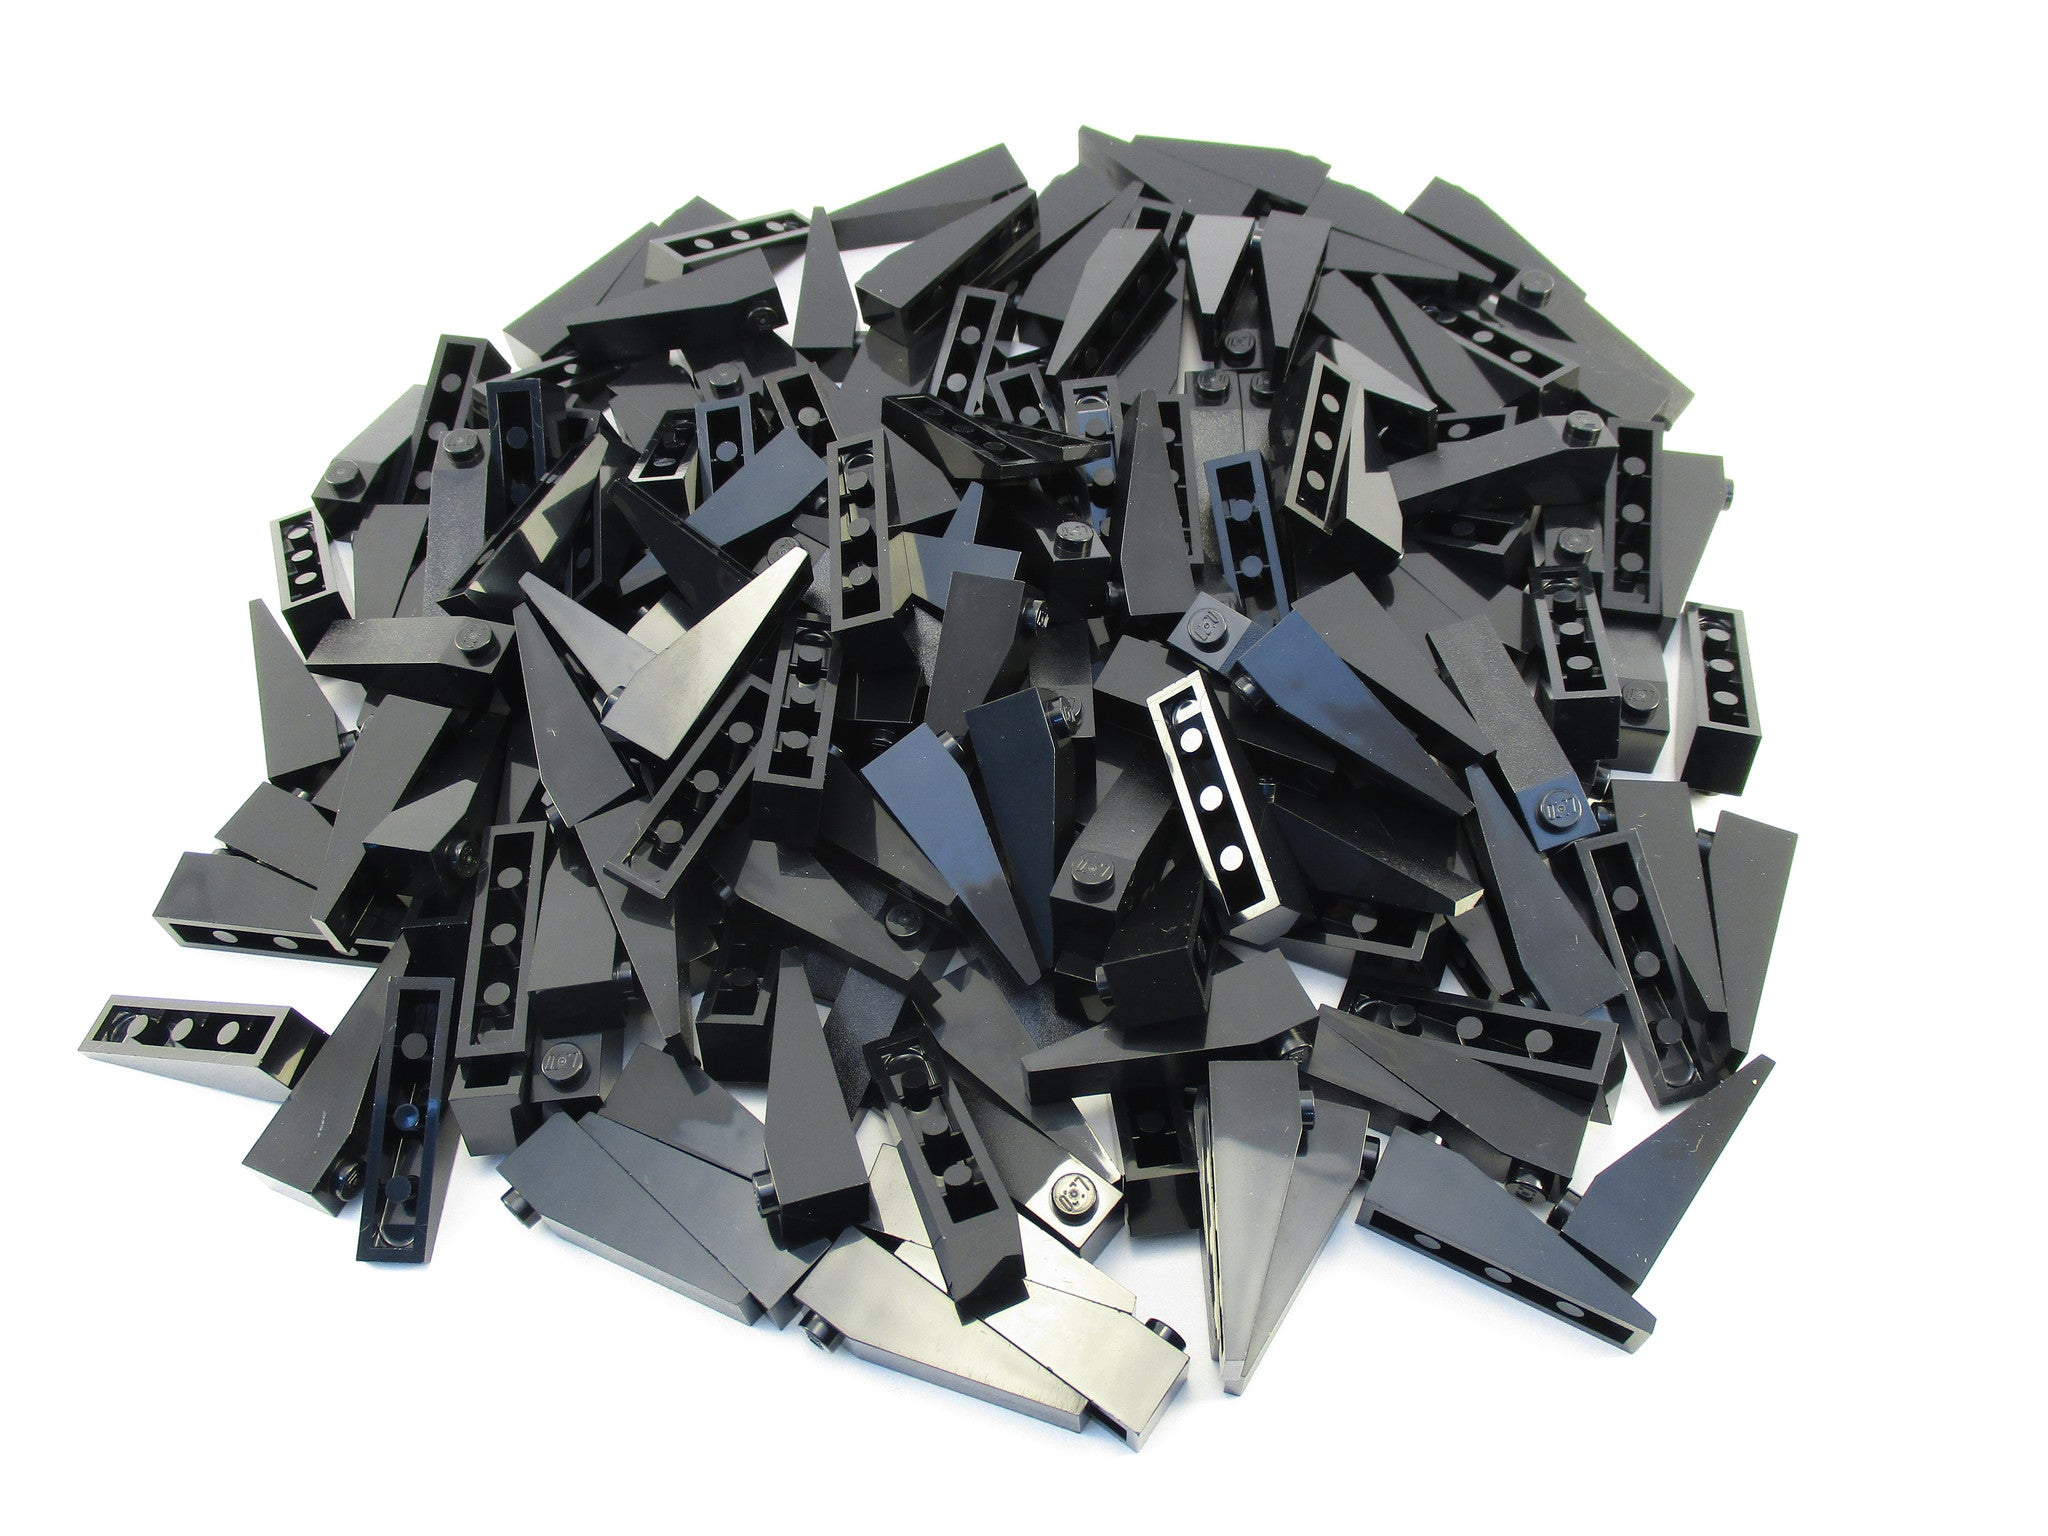 LEGO Black Slope 18 4x1 Lot of 100 Parts Pieces 60477